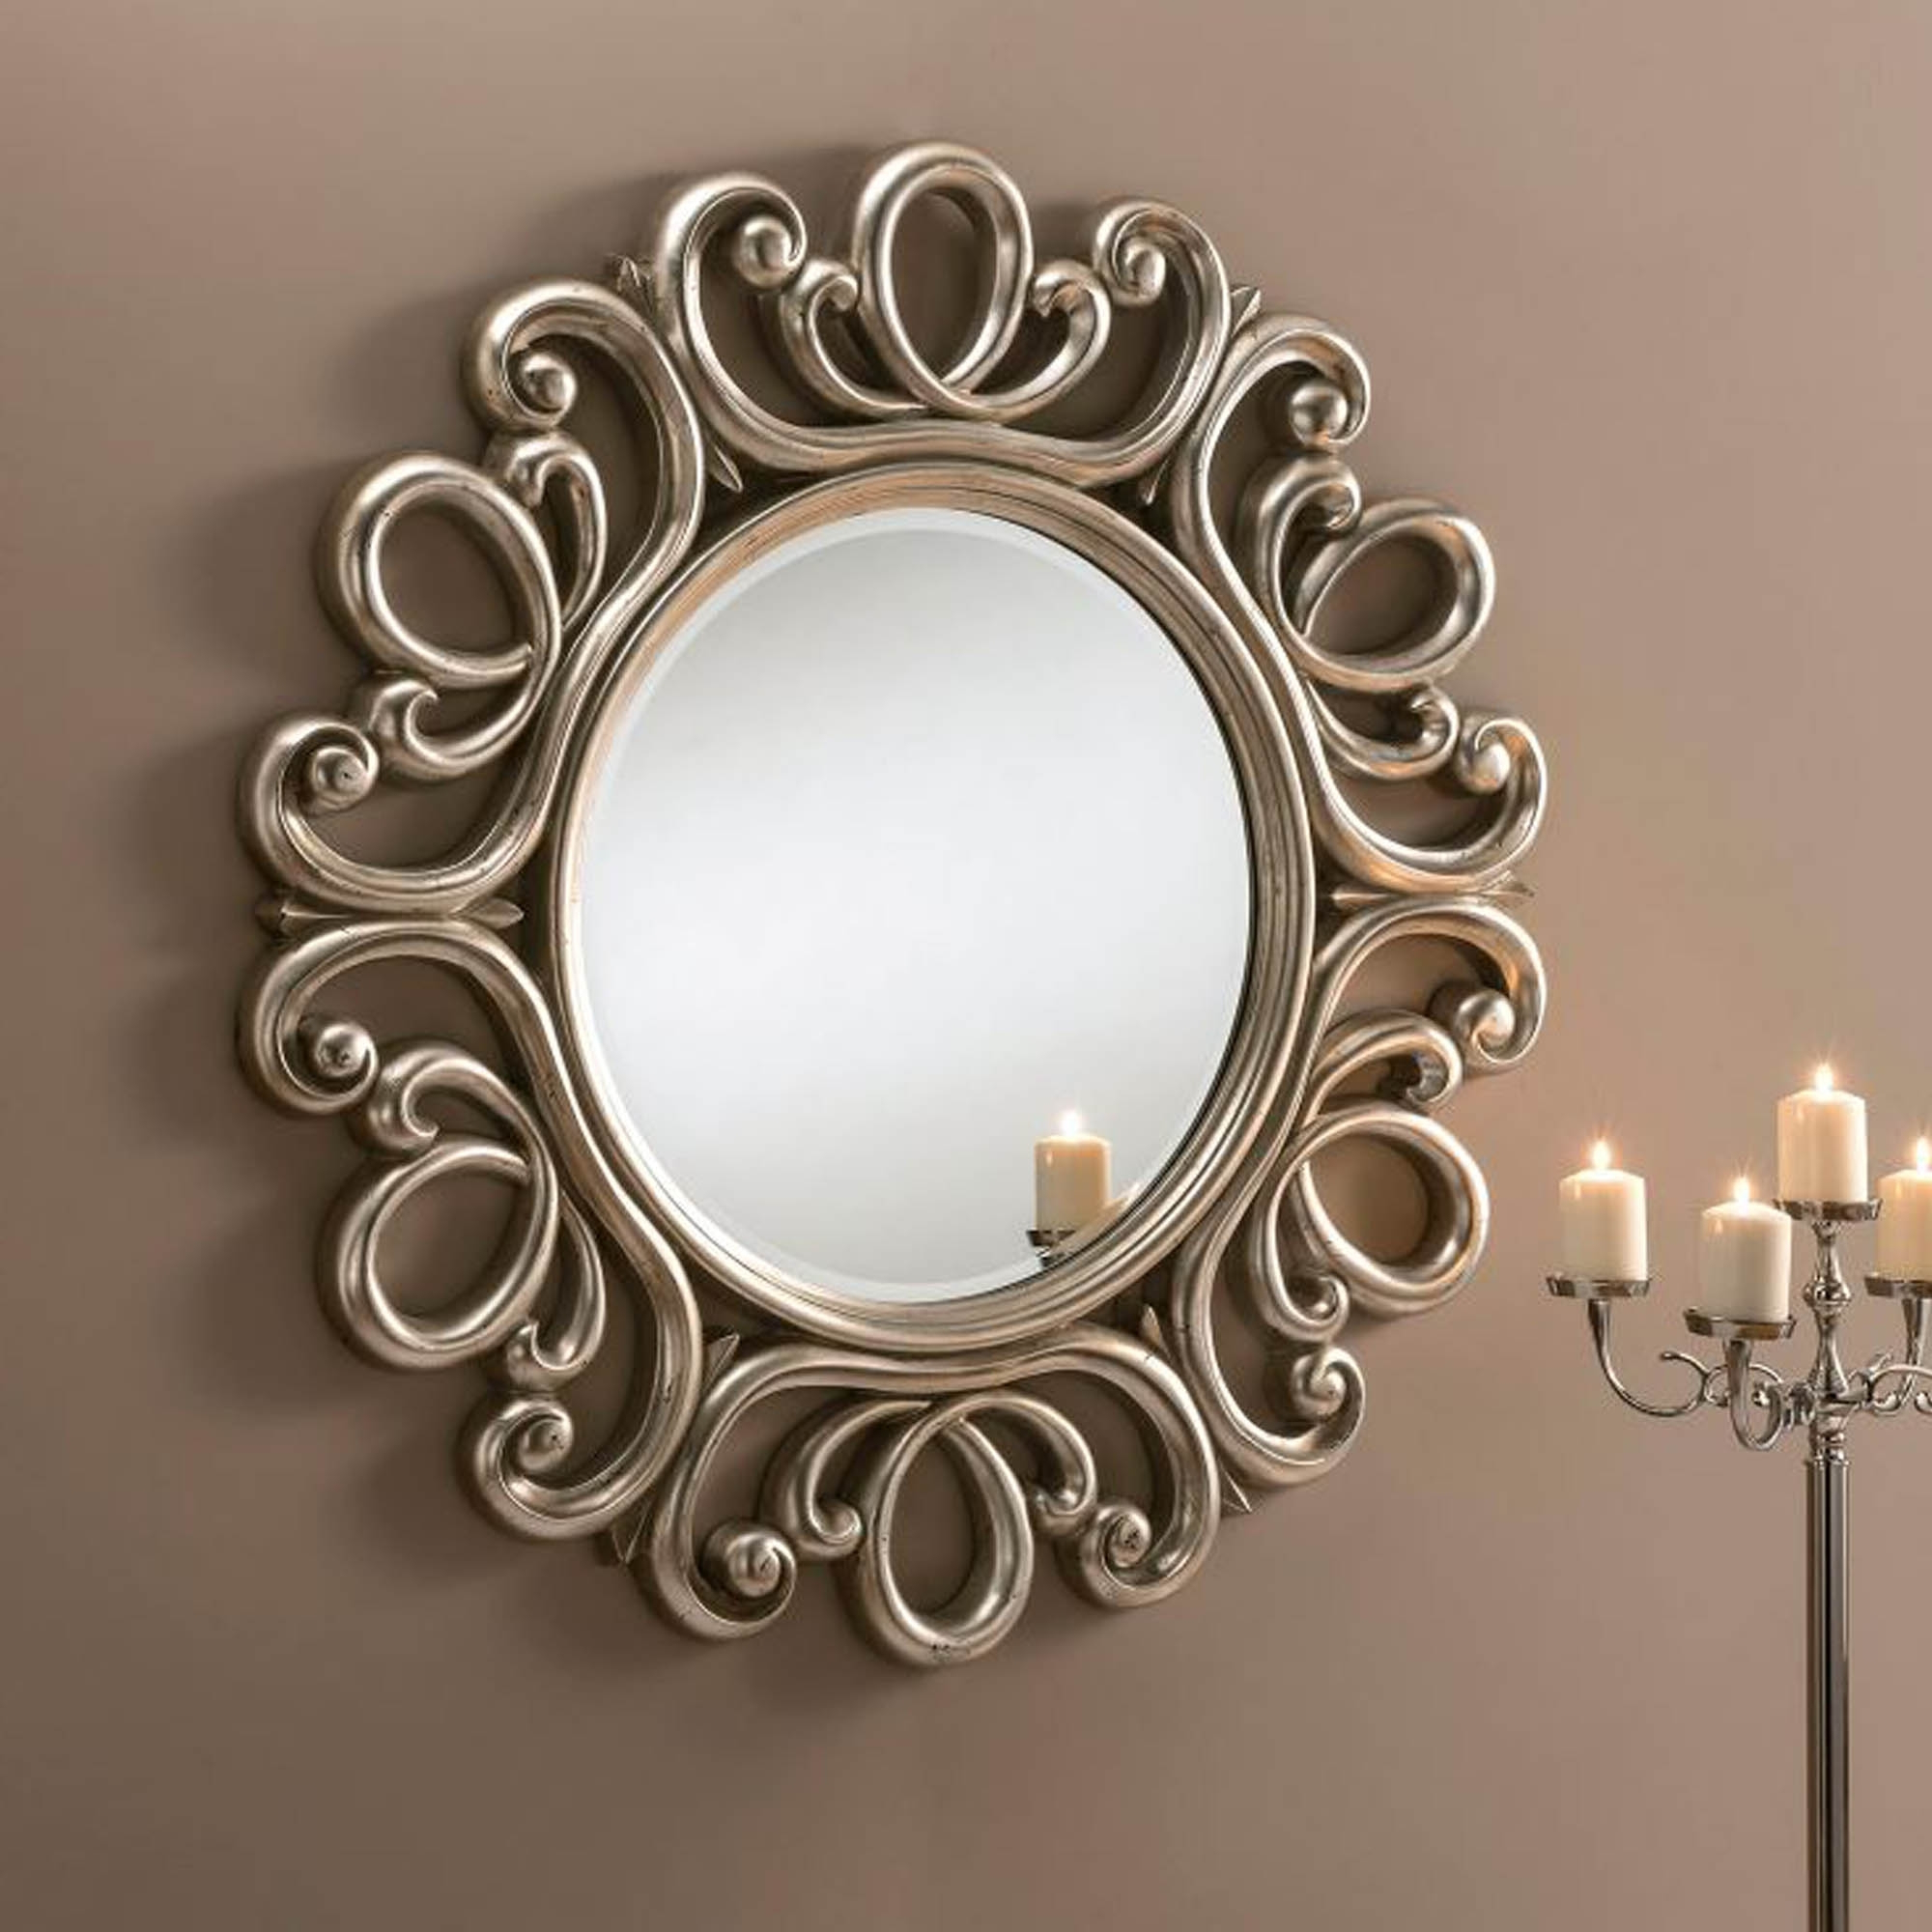 Widely Used Swirl Wall Mirrors Within Antique Silver Swirl Ornate Wall Mirror (View 13 of 20)